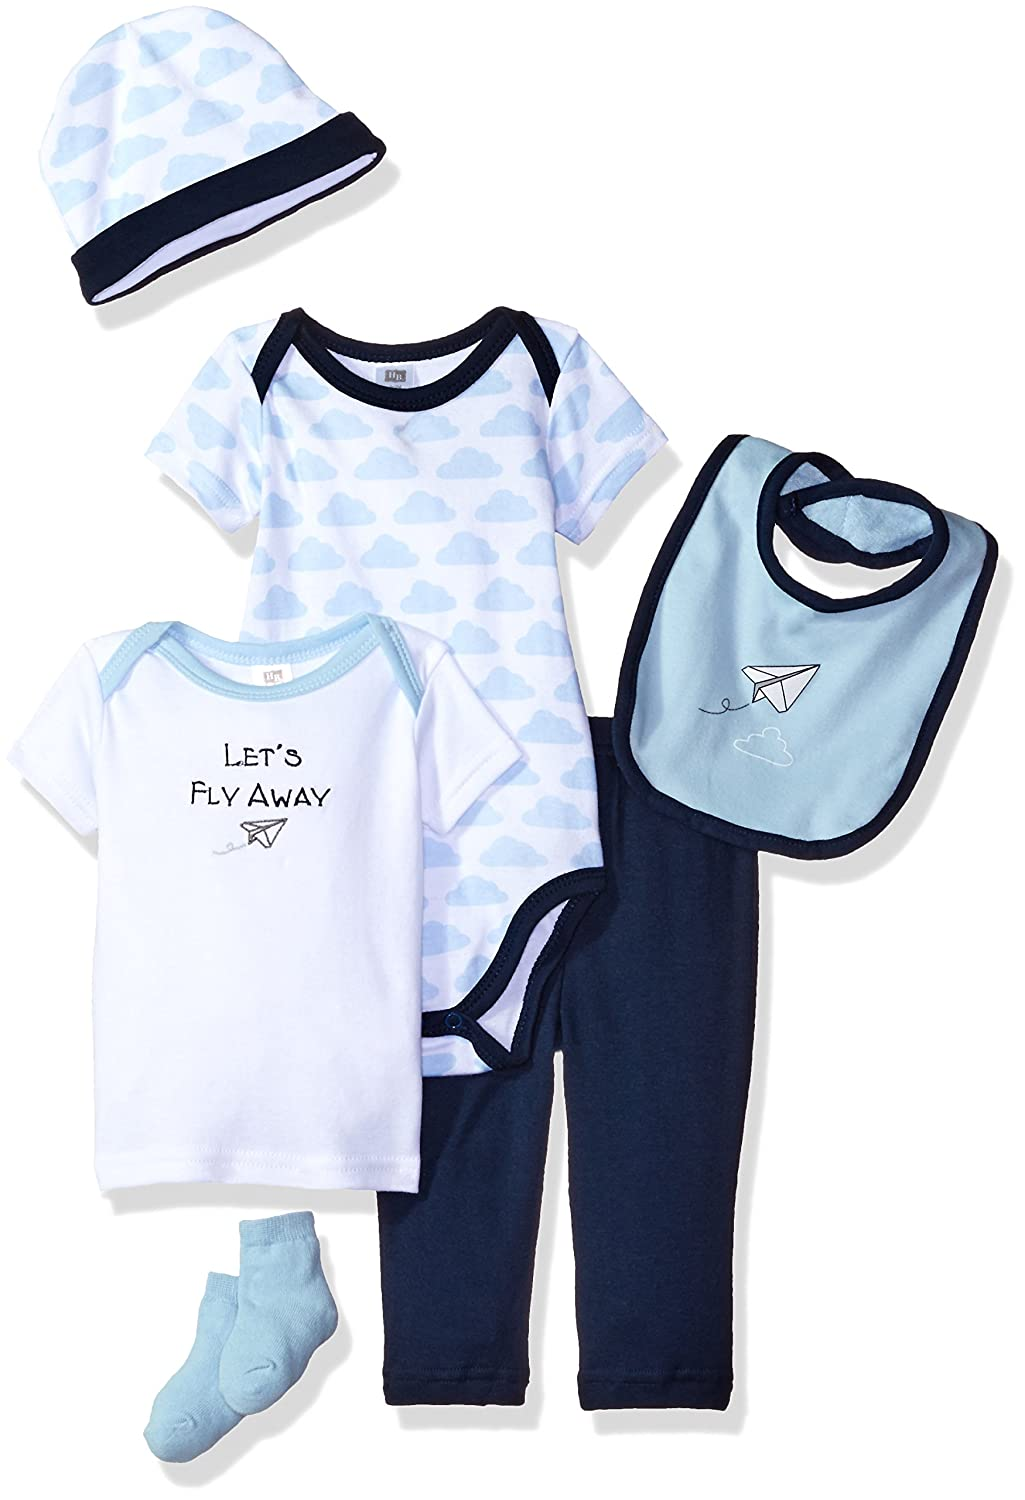 Hudson Baby Newborn Clothing Giftset in Giftbox 6-Piece Set, 0-3 Months Paper Airplane 6 0-3 Months (3M) 58106